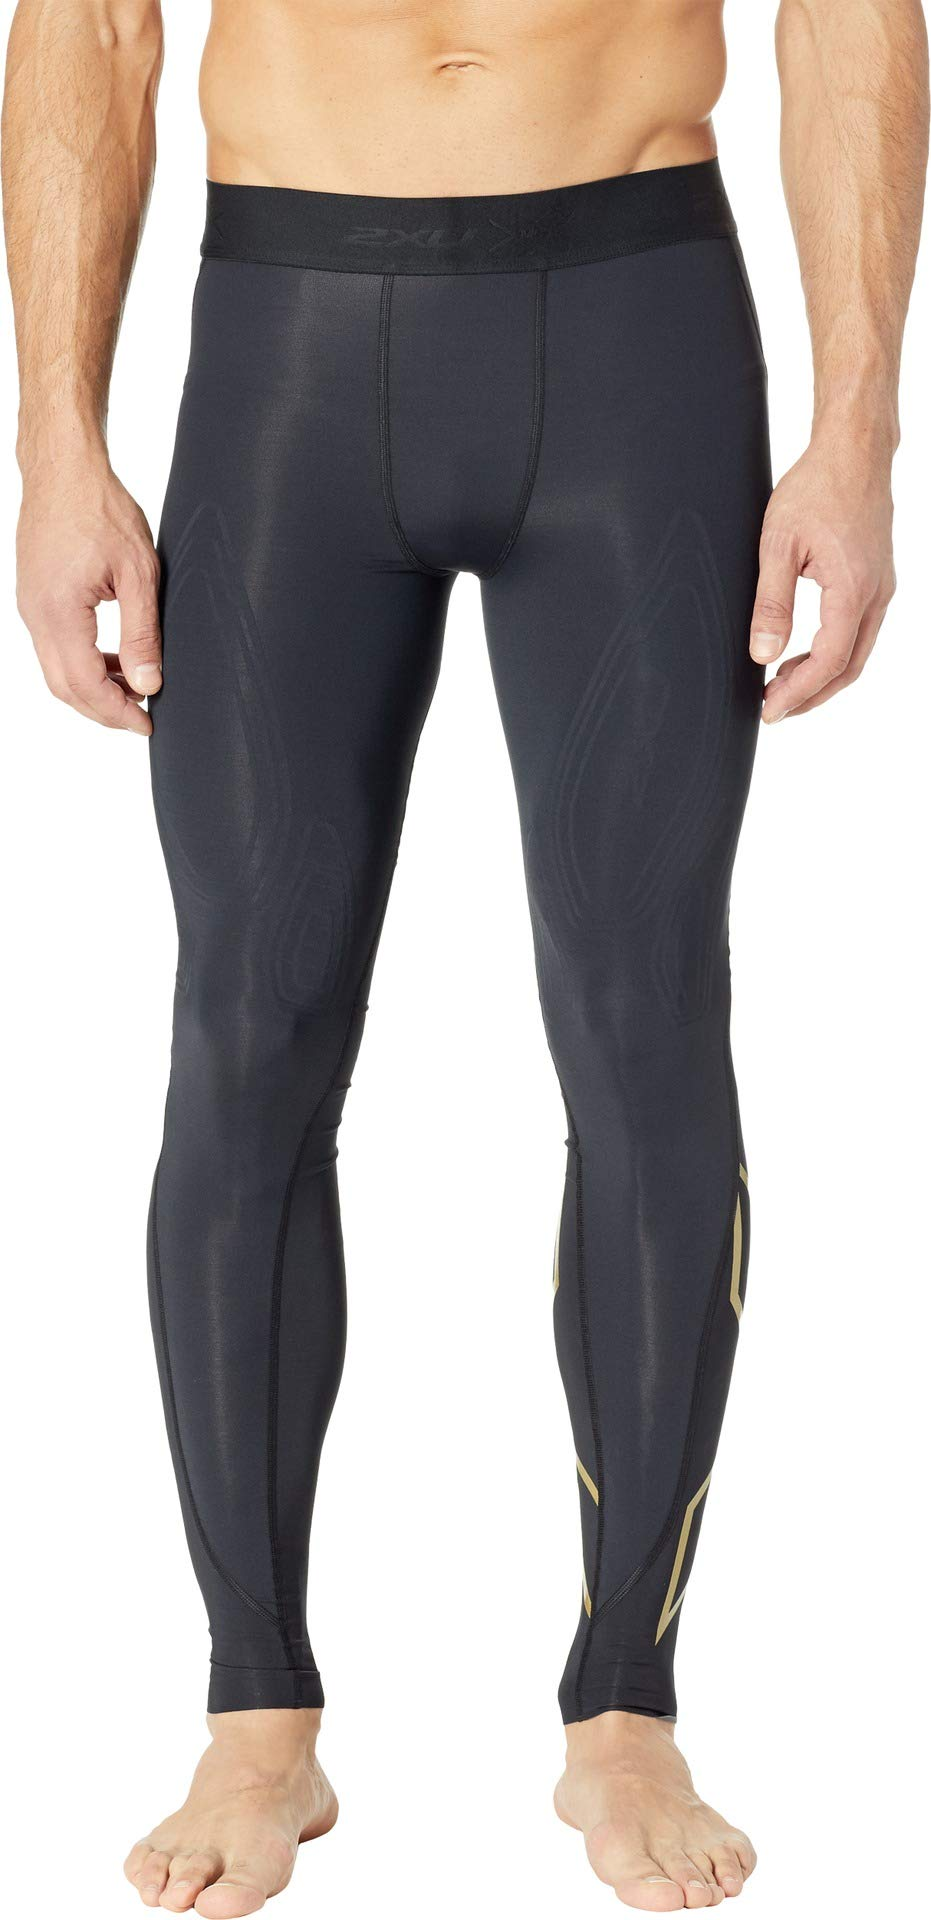 2XU Men's MCS Cross Training Compression Tights Black/Gold XX-Large R by 2XU (Image #1)